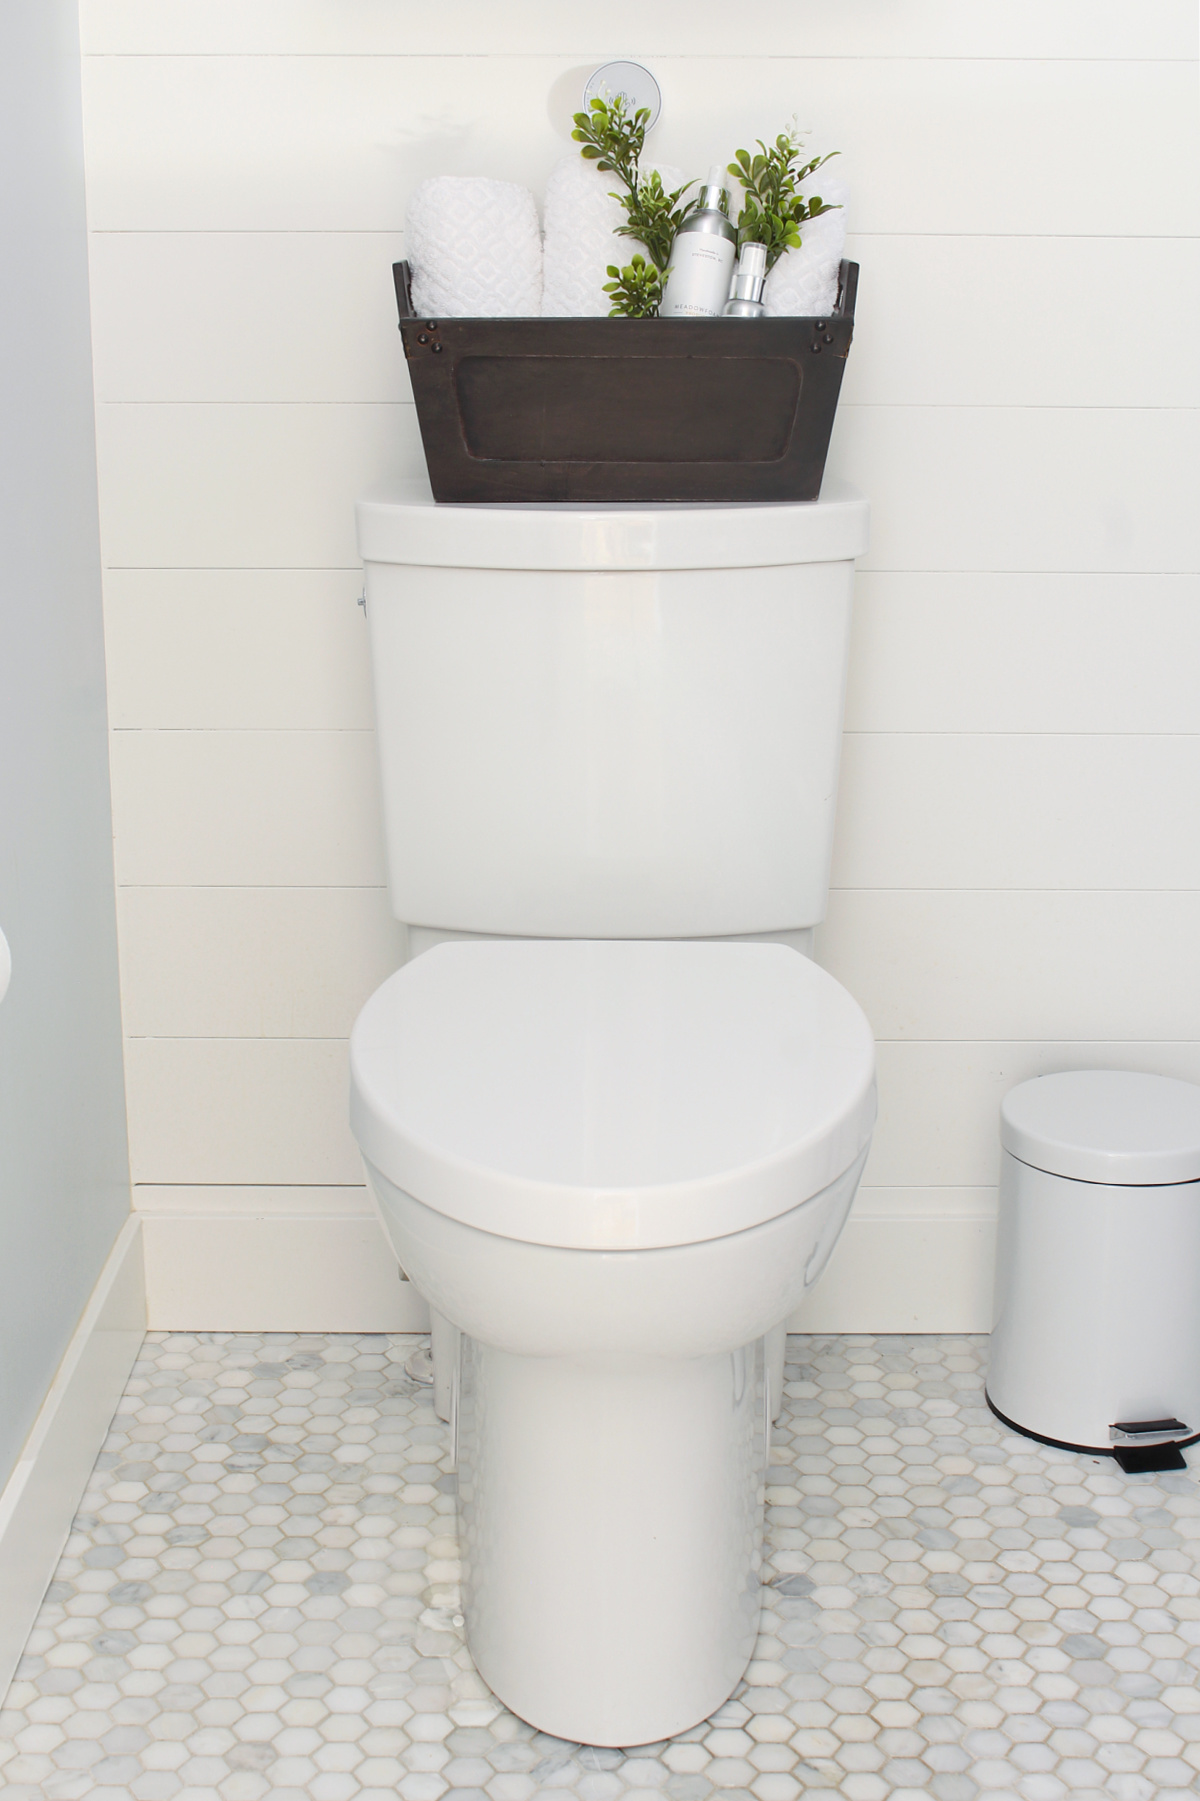 American Standard Studio Touchless toilet in a farmhouse style bathroom.